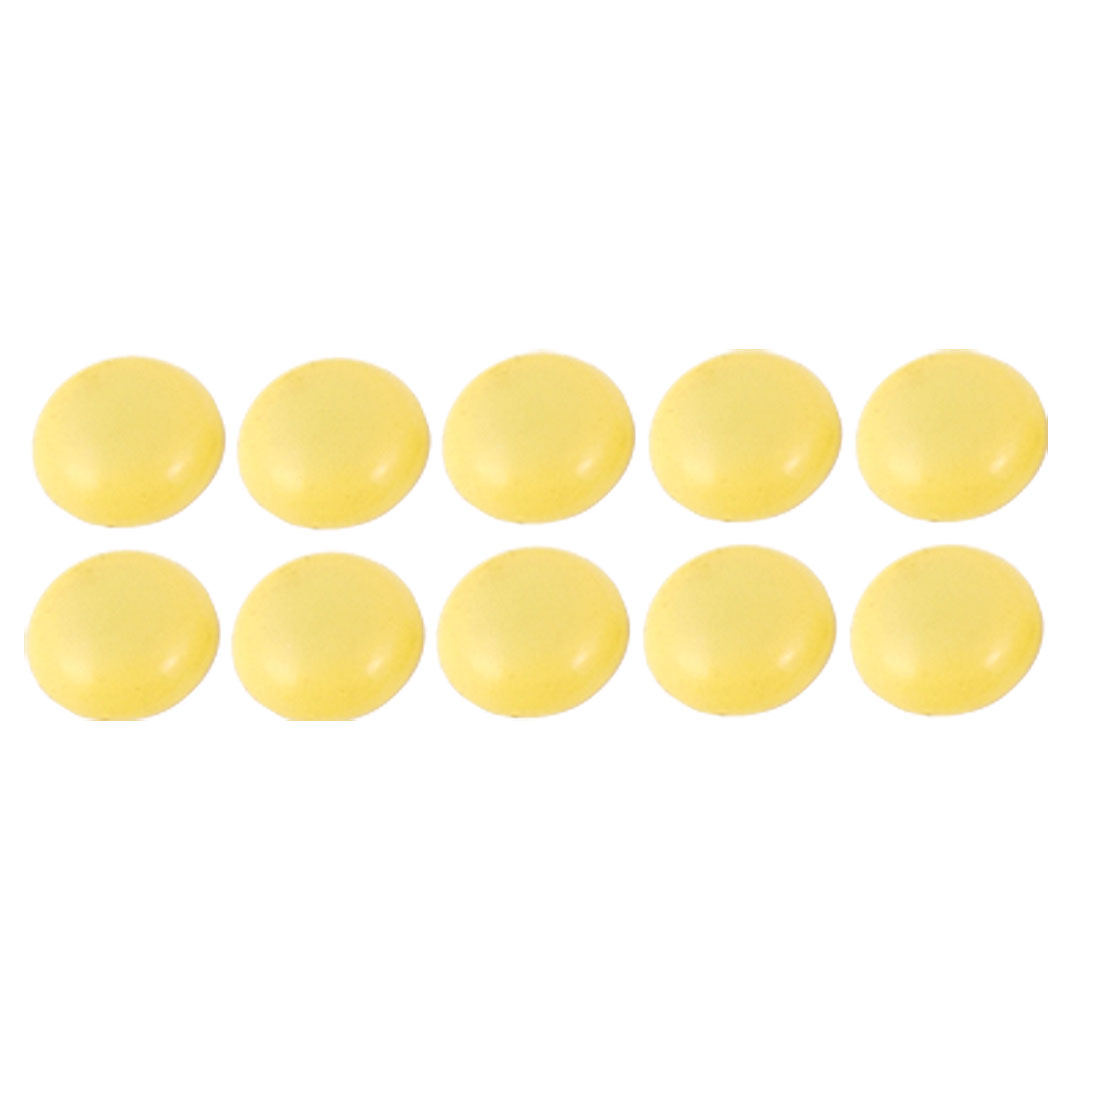 10 Pcs Office School Blackboard Yellow Plastic Cover Round Magnetic Stickers